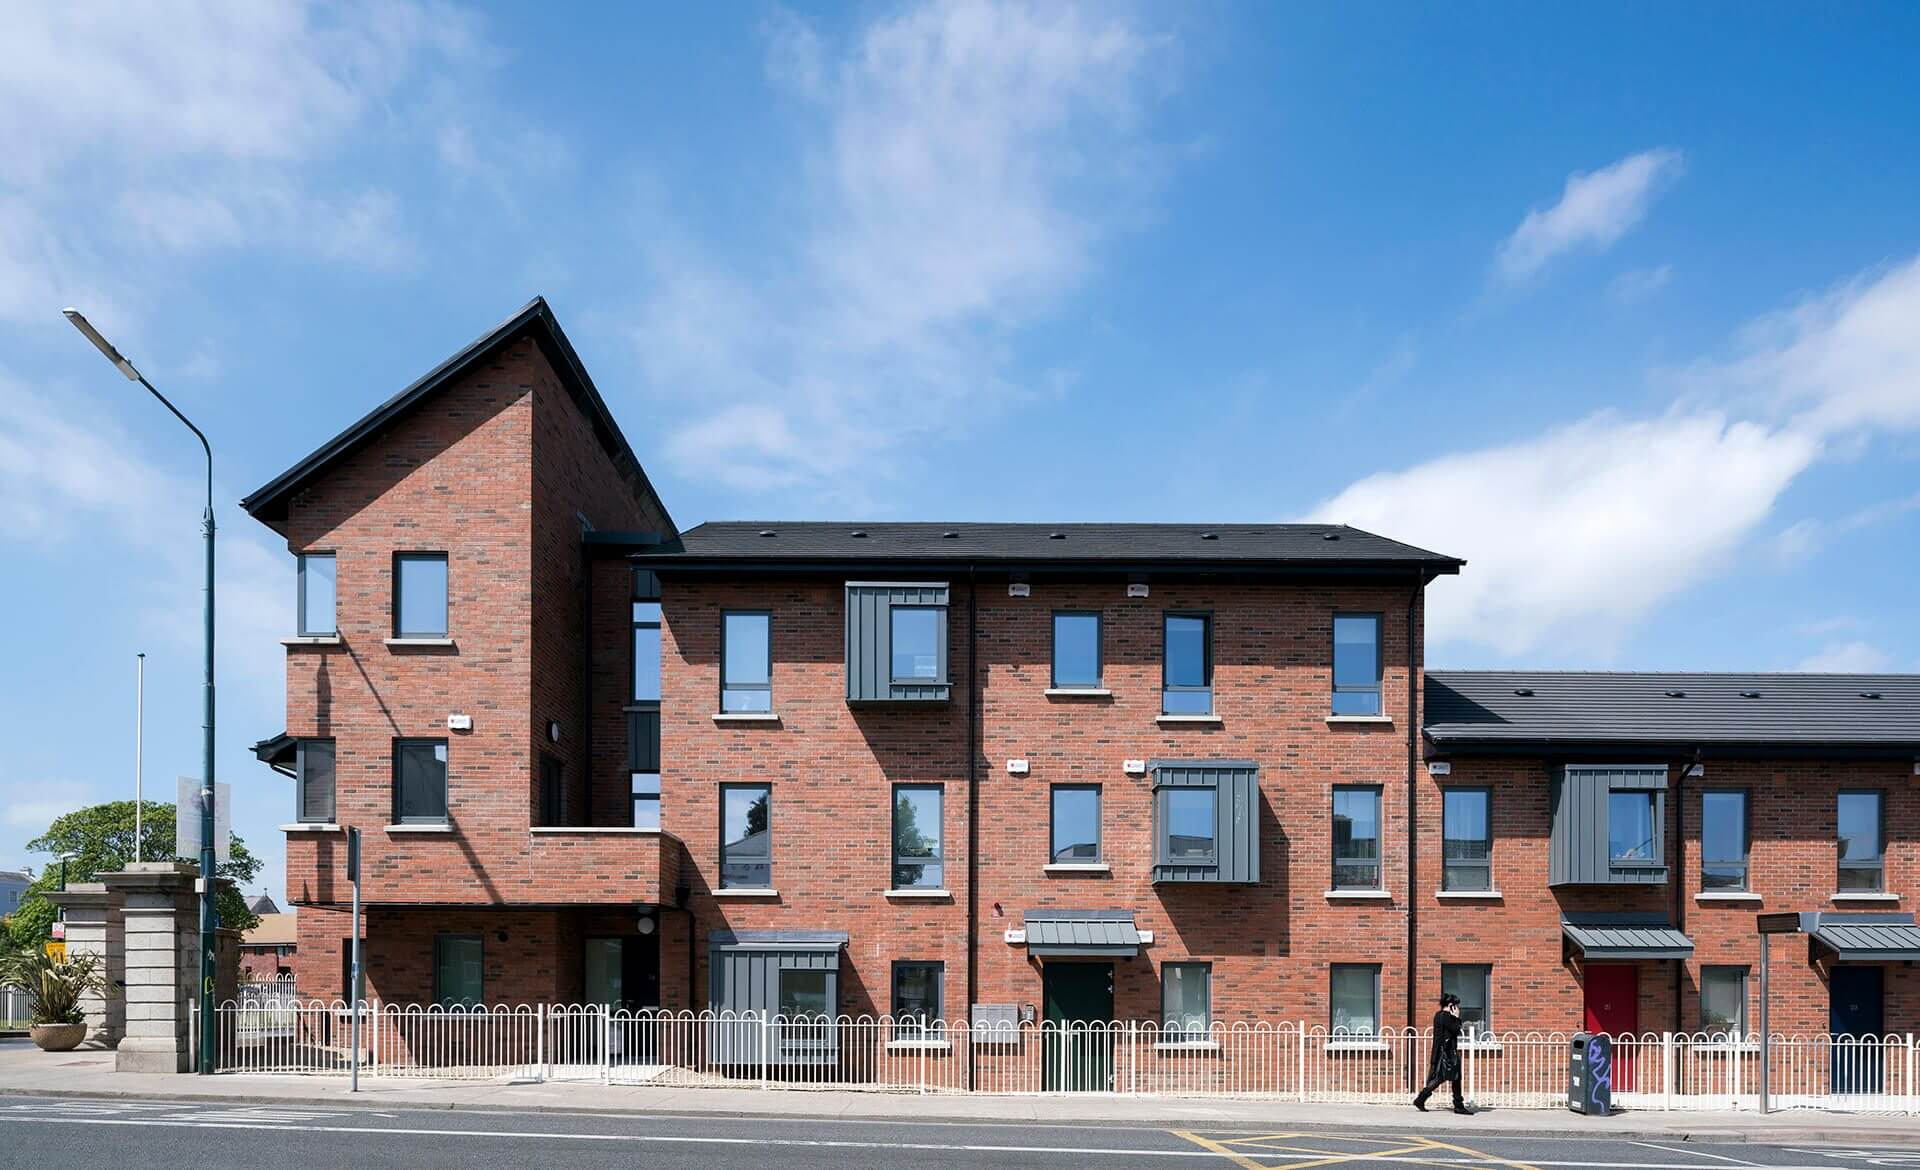 Residential Cjfa Architecture Greenmount Close Harolds Cross Dublin 1